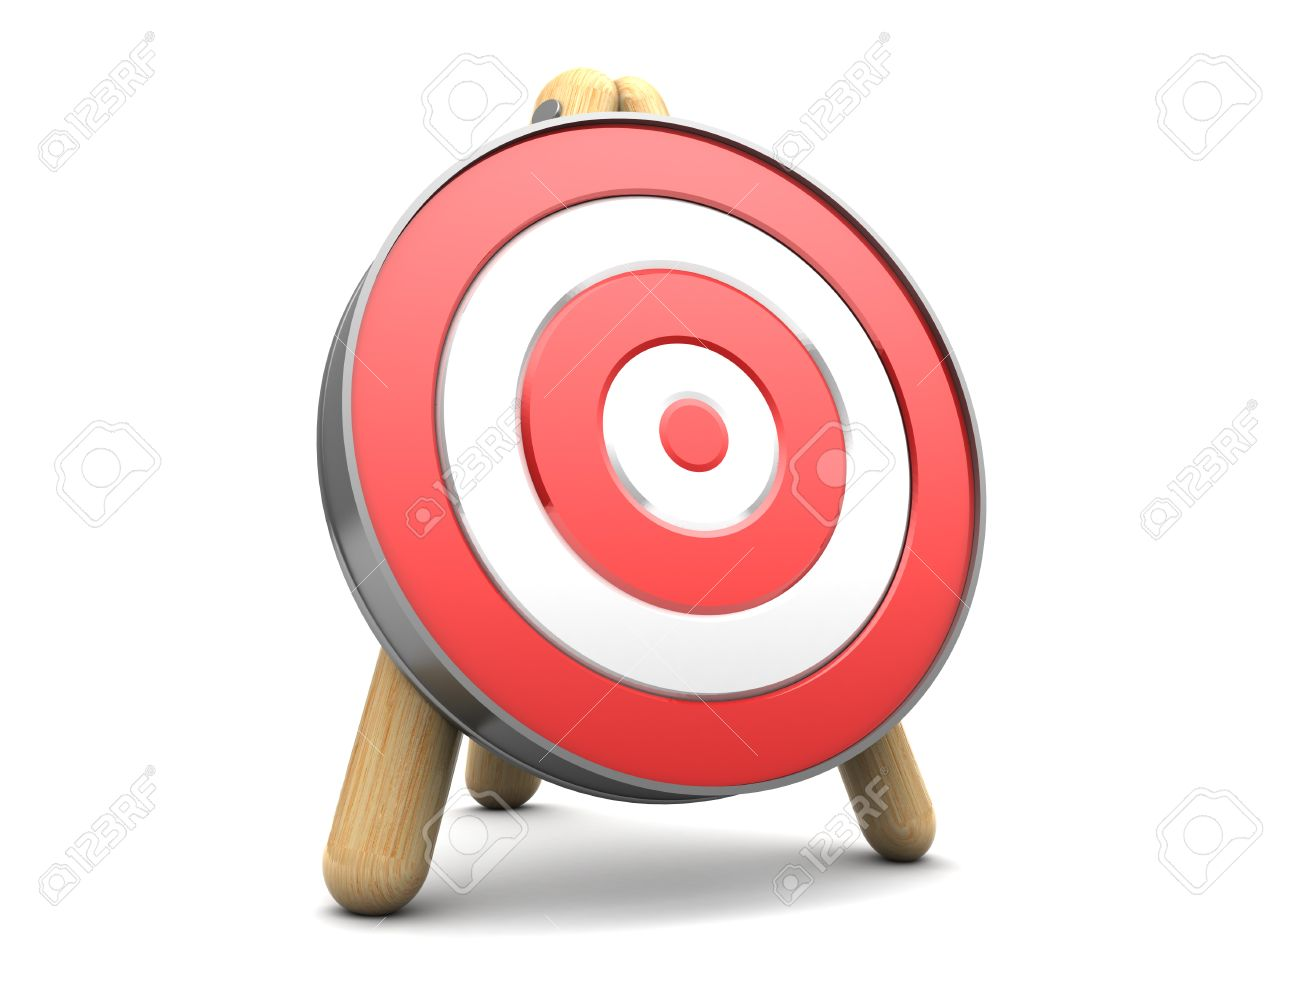 3d Illustration Of Target Stand Over White Background Stock Photo Picture And Royalty Free Image Image 38919100 Target stand with 3 legs for minium 70cm targets height assembled approx. 3d illustration of target stand over white background